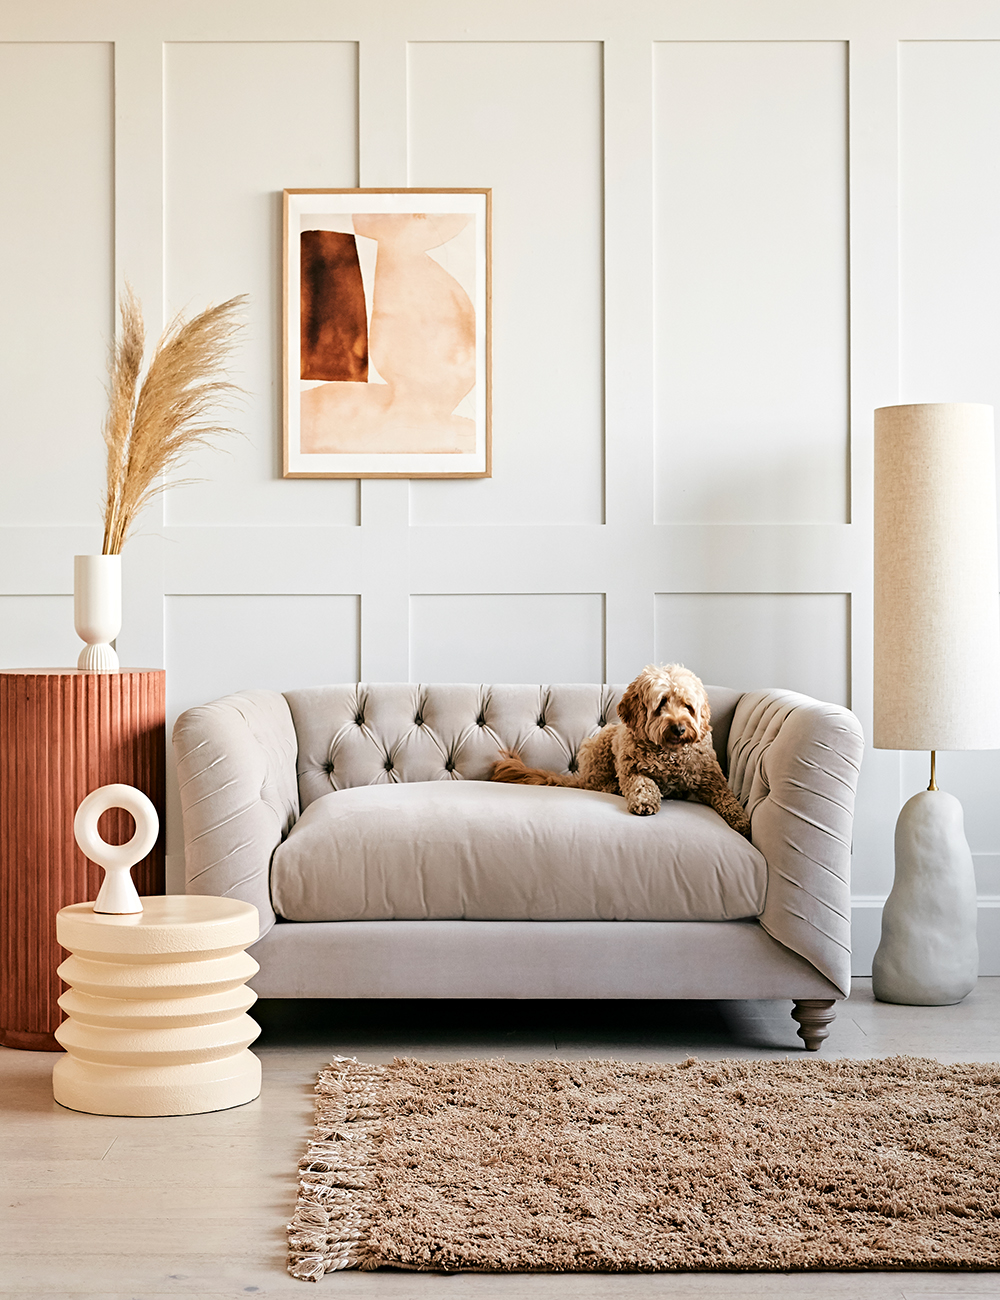 Read: Sofa, Love Seat or Armchair? Which is for You?